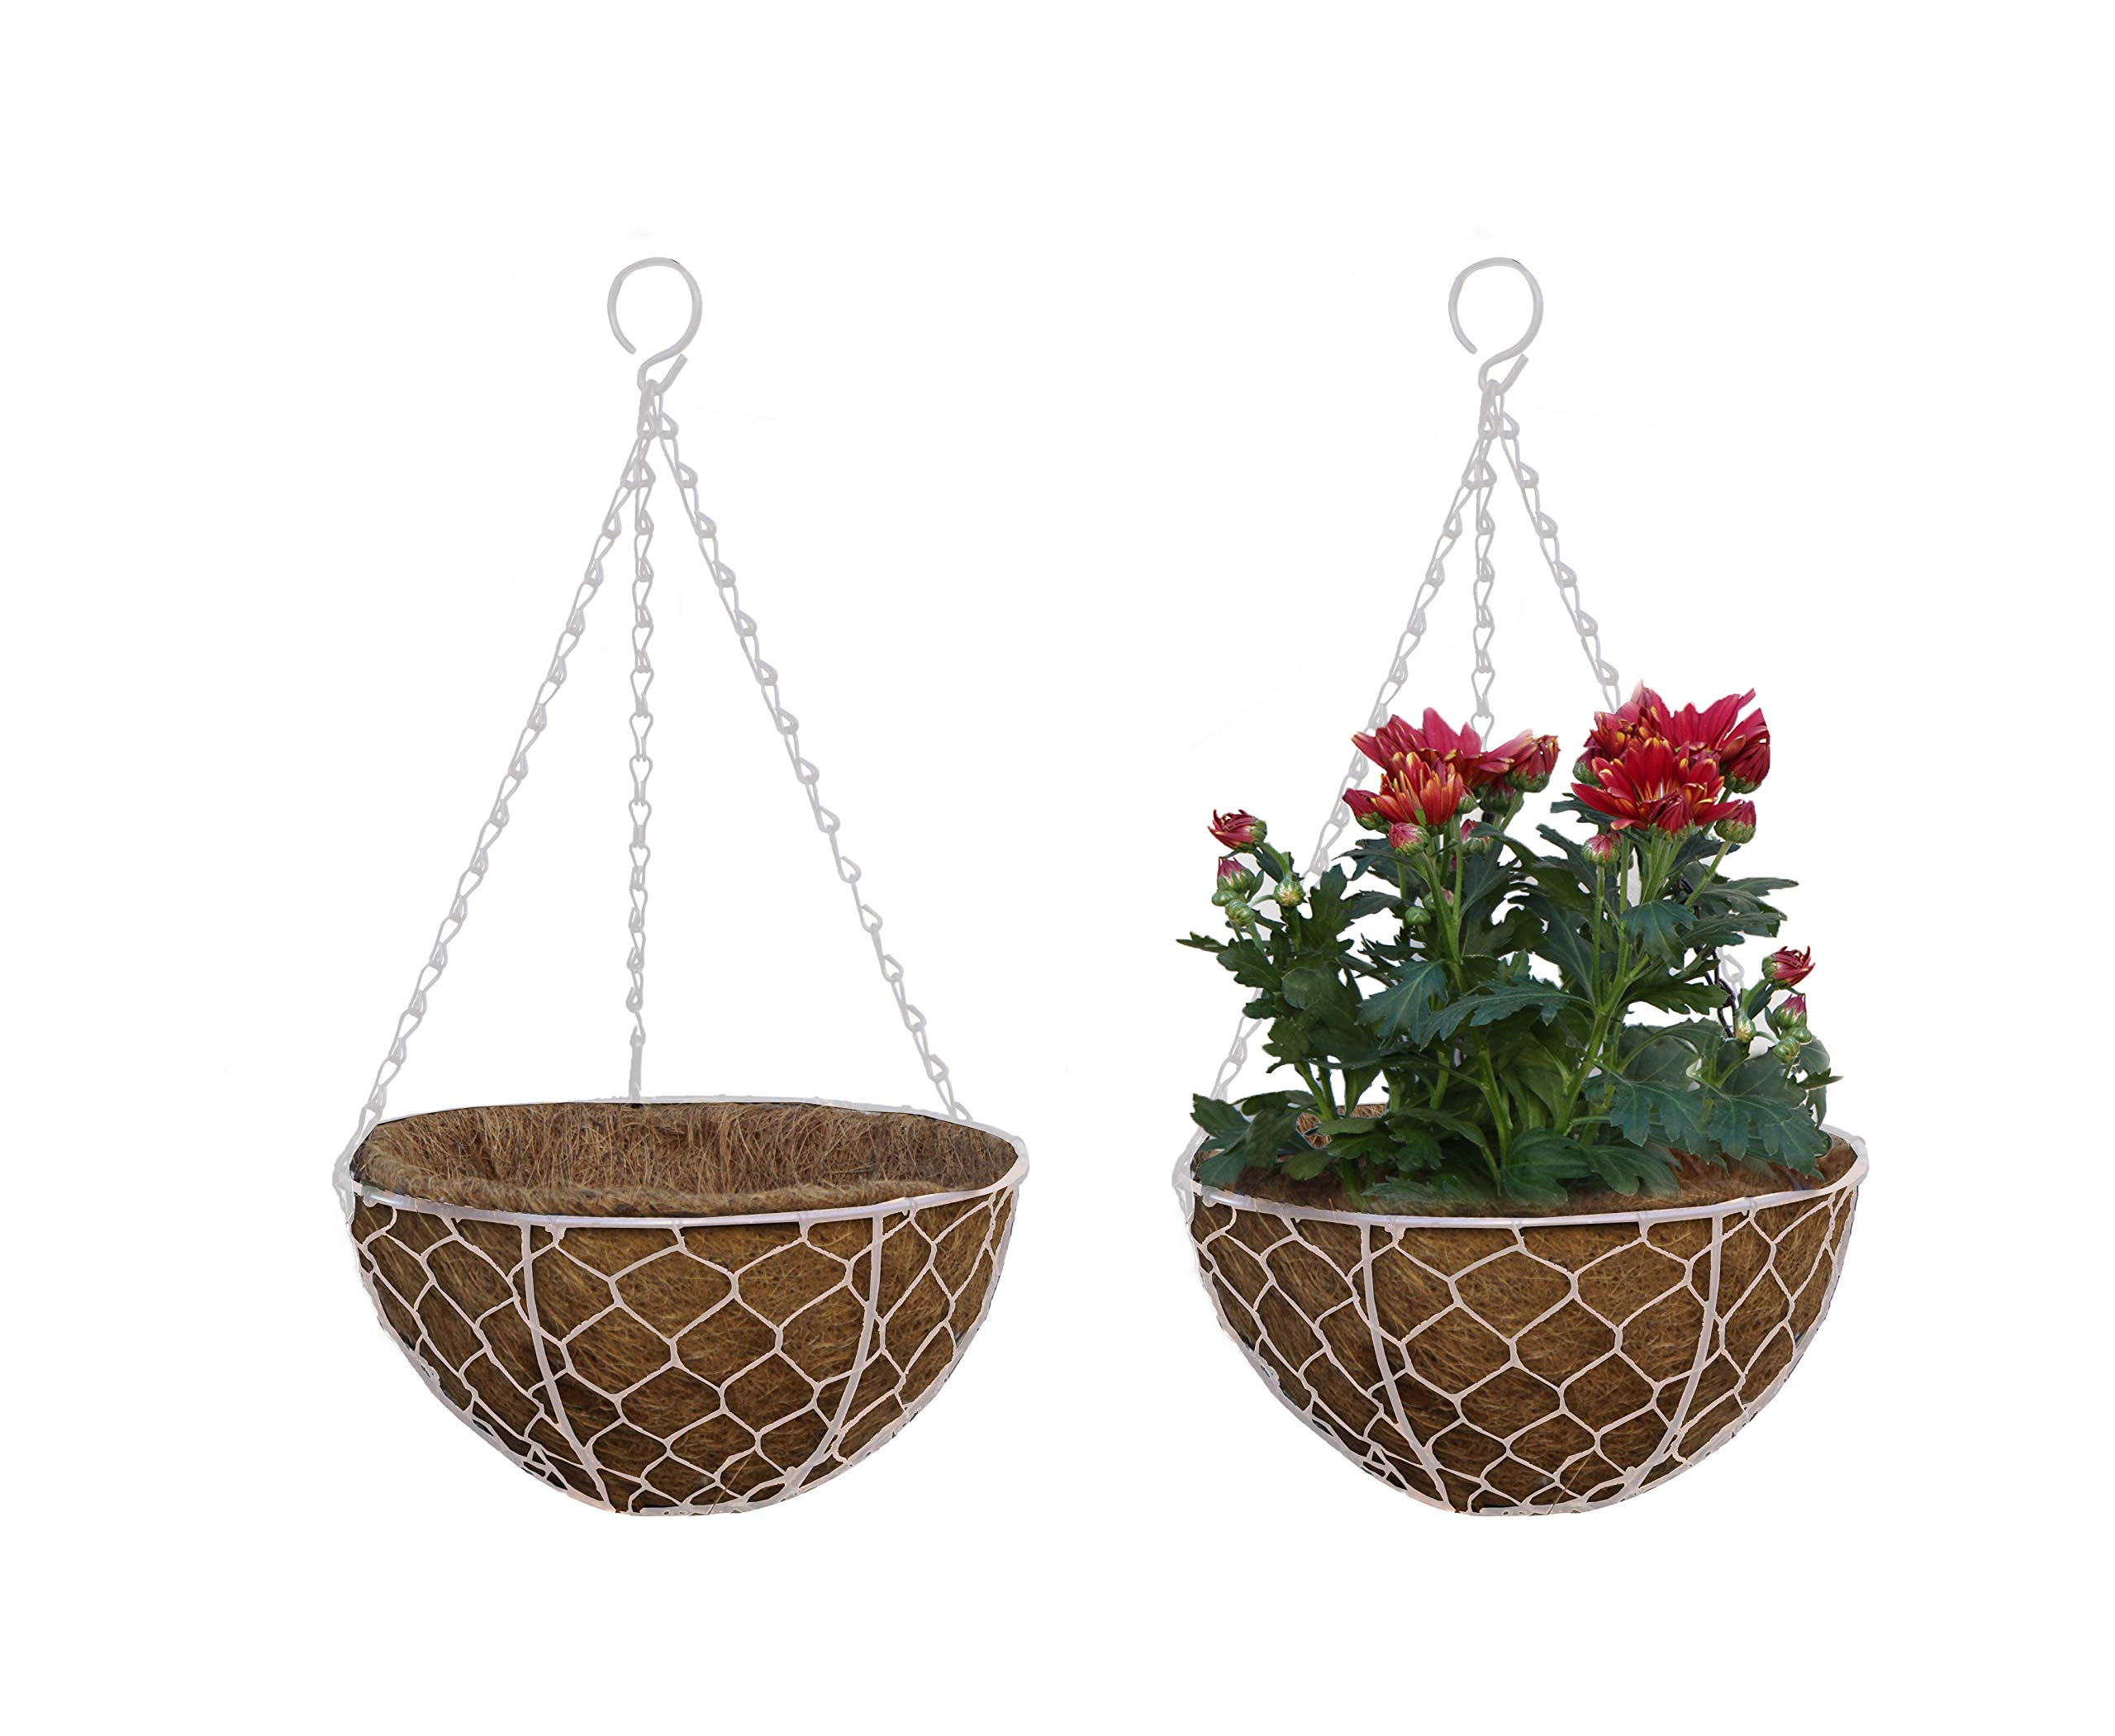 TABOR TOOLS Metal Hanging Planter Basket with Natural Coconut Coir Liner, Water Saving Hanging Flower Pot, Decor Hanging Basket, Chain and Hook Included.2-Pack (12'' Hen Mesh, White, MT2107A)